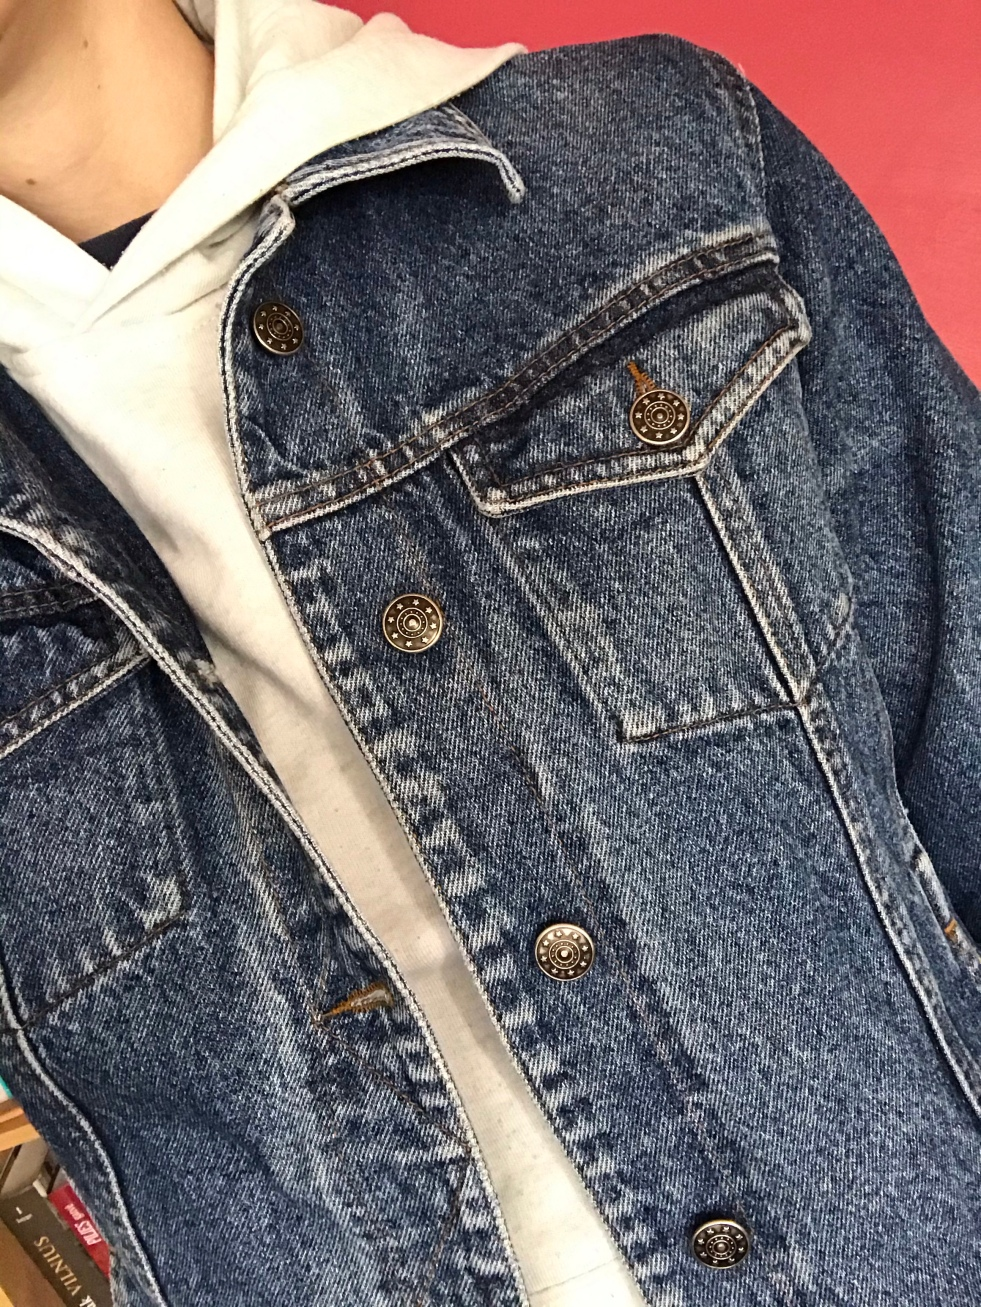 Girl wearing white shirt under a jean jacket from thrift store